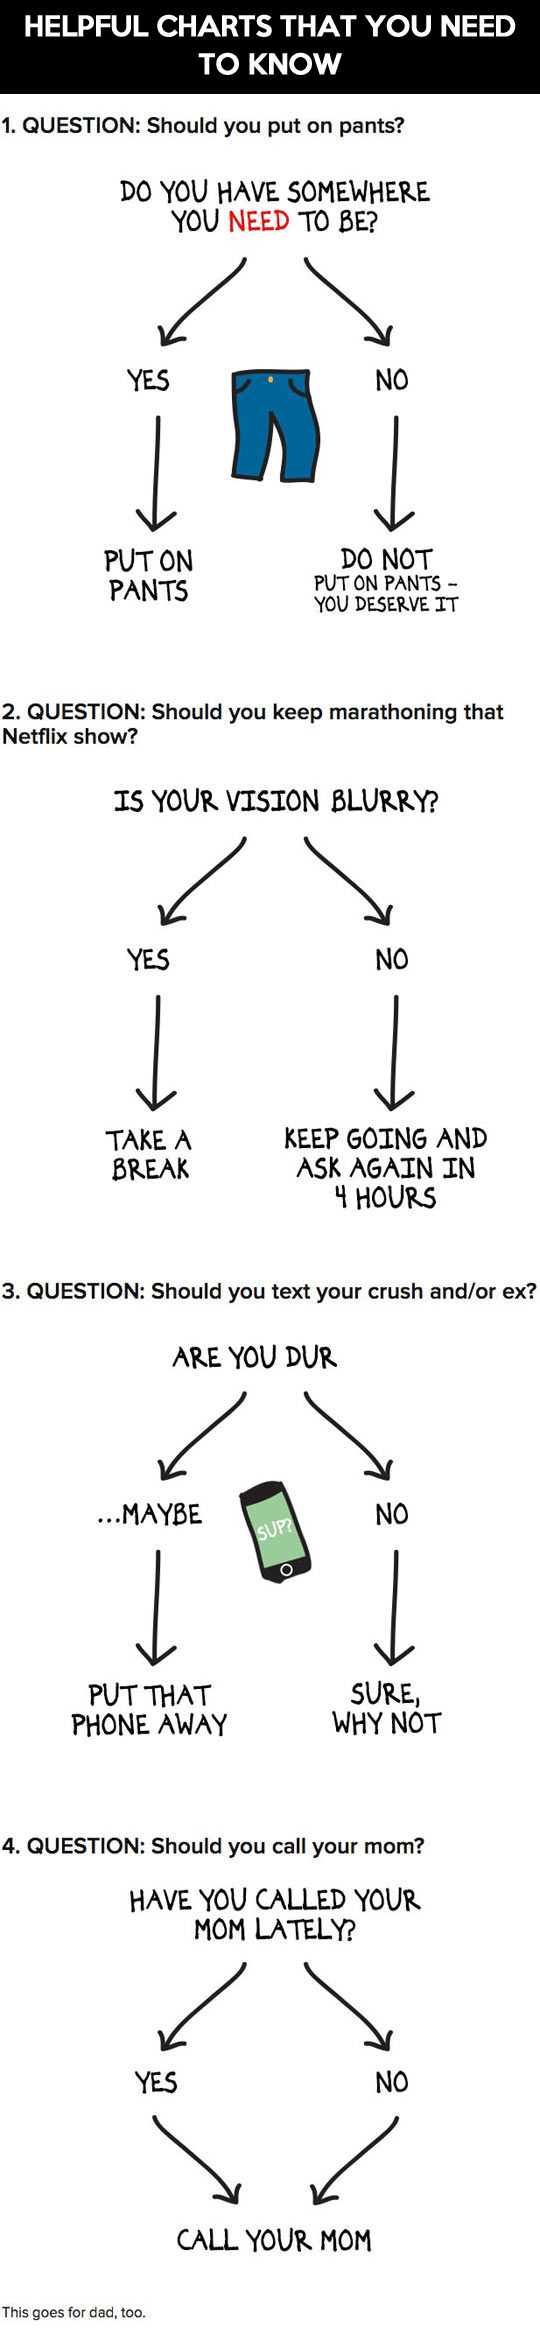 What to do: Helpful charts...